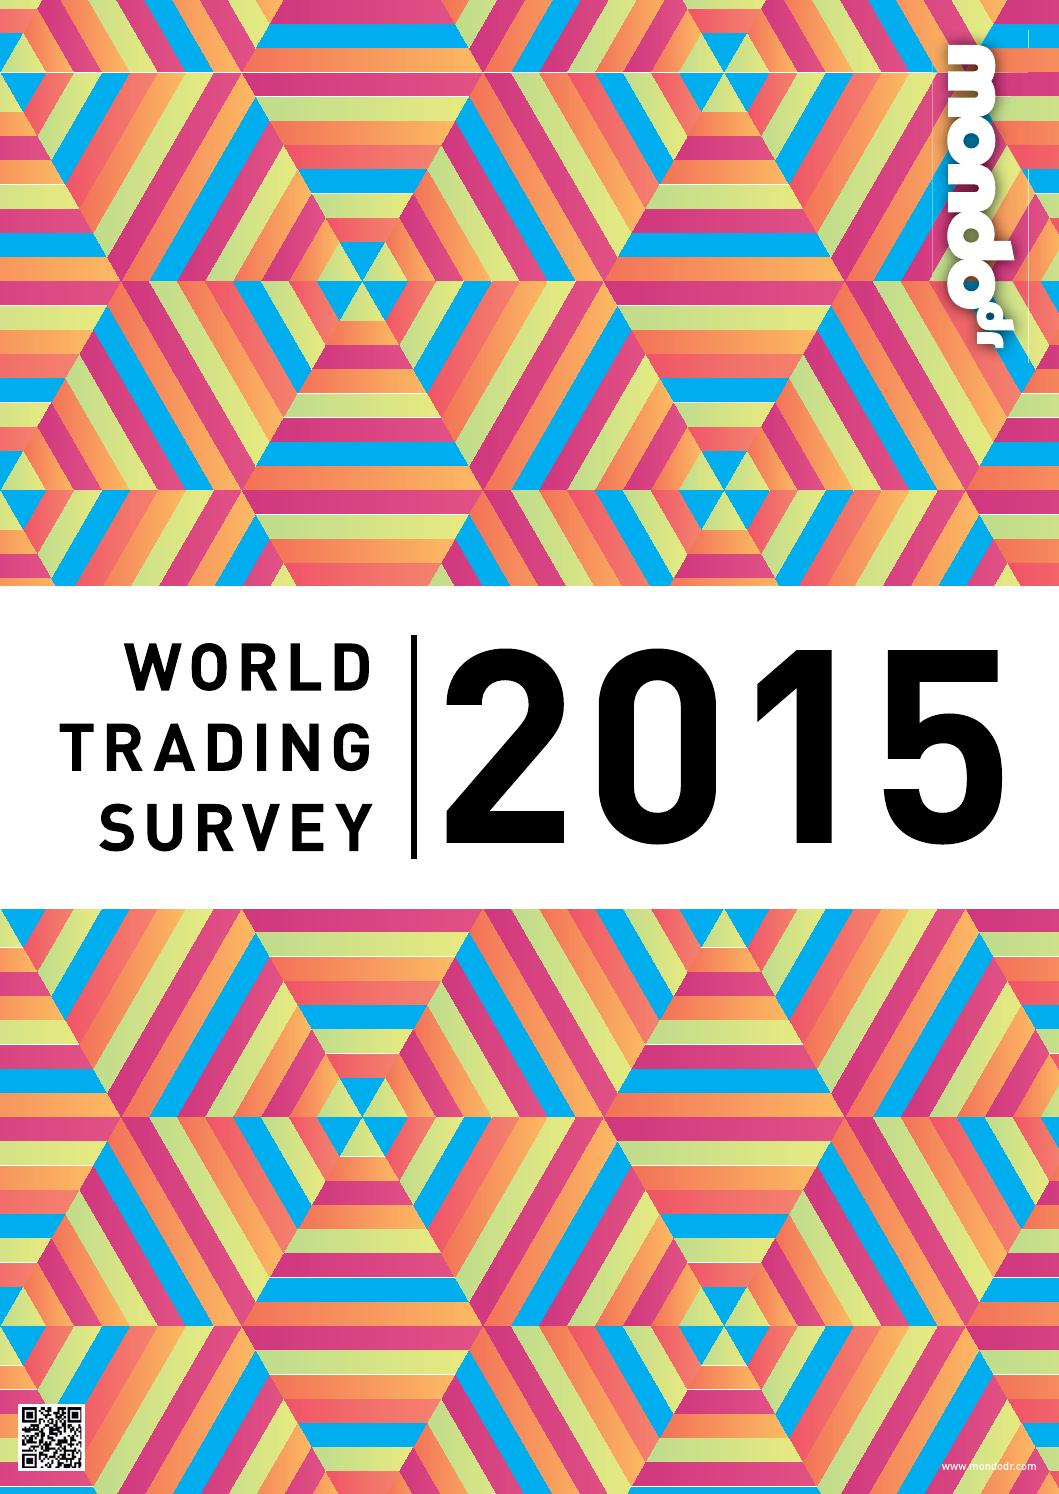 World Trading Survey 2015 By Mondiale Publishing Issuu Frame Anthem 275 Blue Orange M